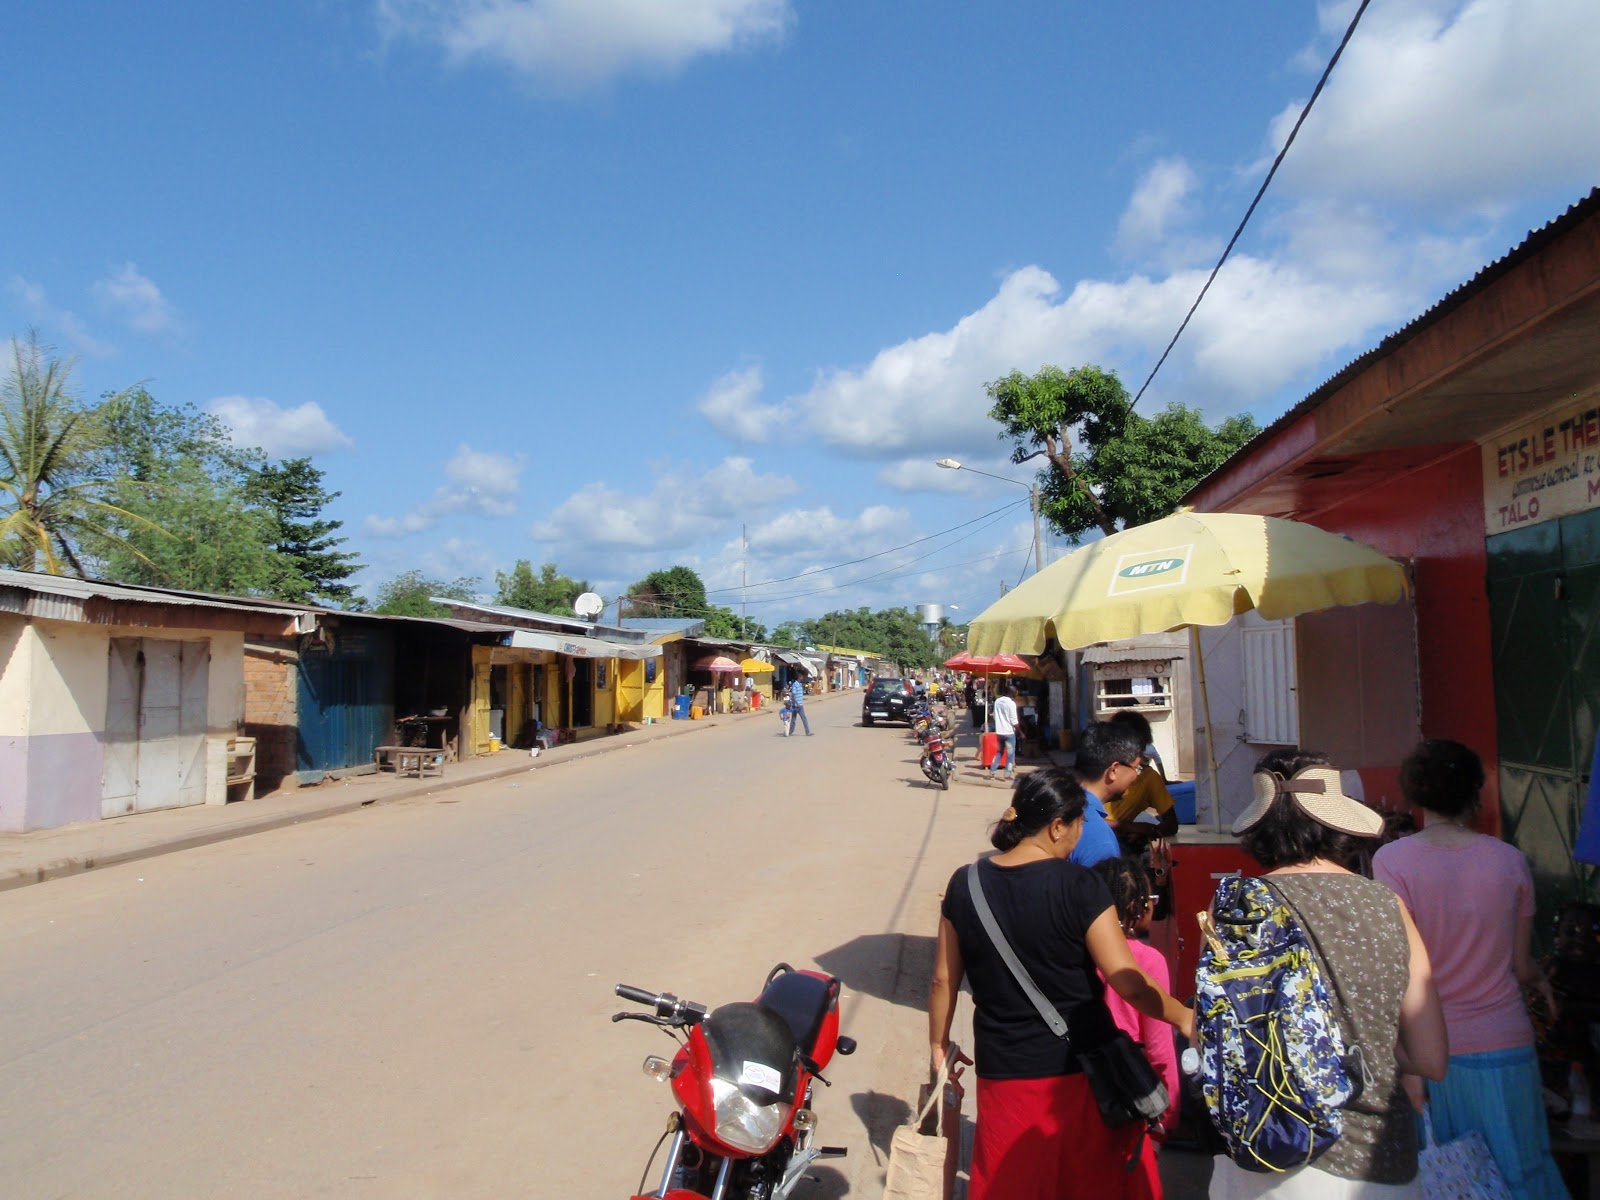 a glimpse of impfondo the town the market and the pigmy village